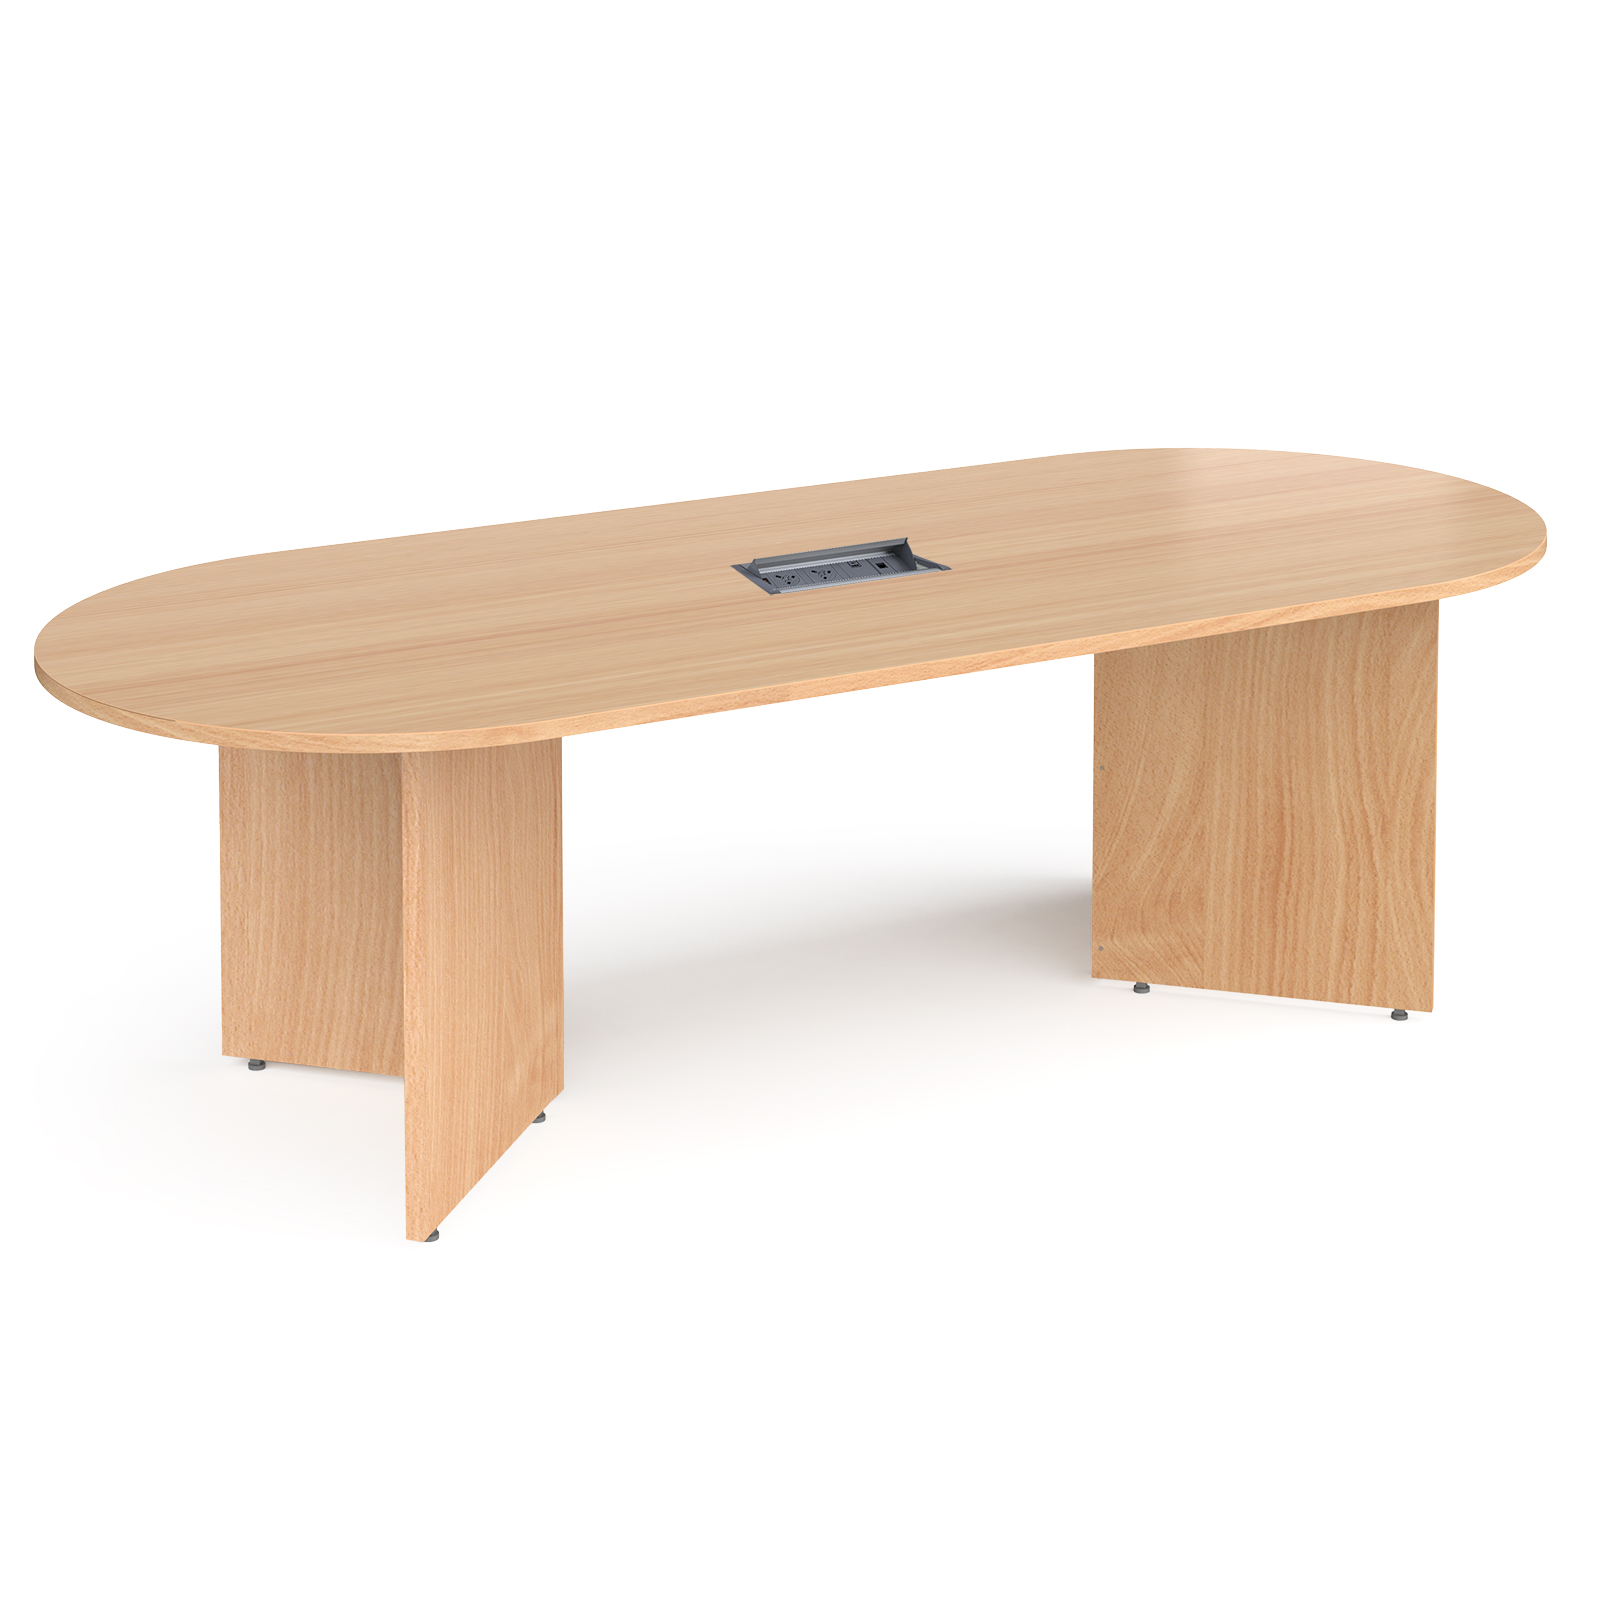 Boardroom / Meeting Arrow head leg radial end boardroom table 2400mm x 1000mm in beech with central cutout and Aero power module